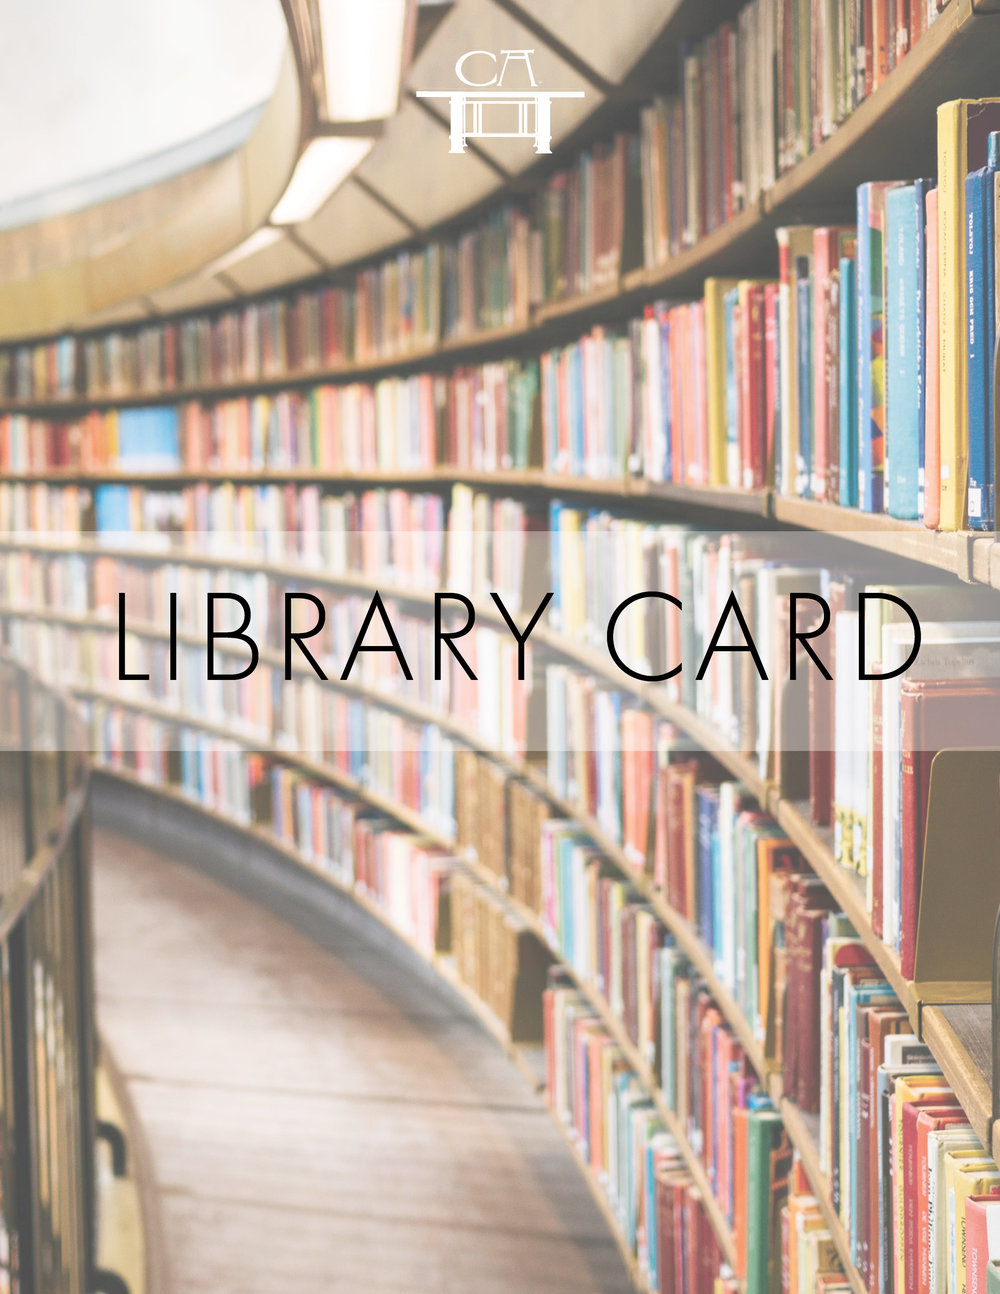 Digital Library Card - Provide your team access to all our guides in digital format, including guides on how to lead discussions on great works of literature.INCLUDED